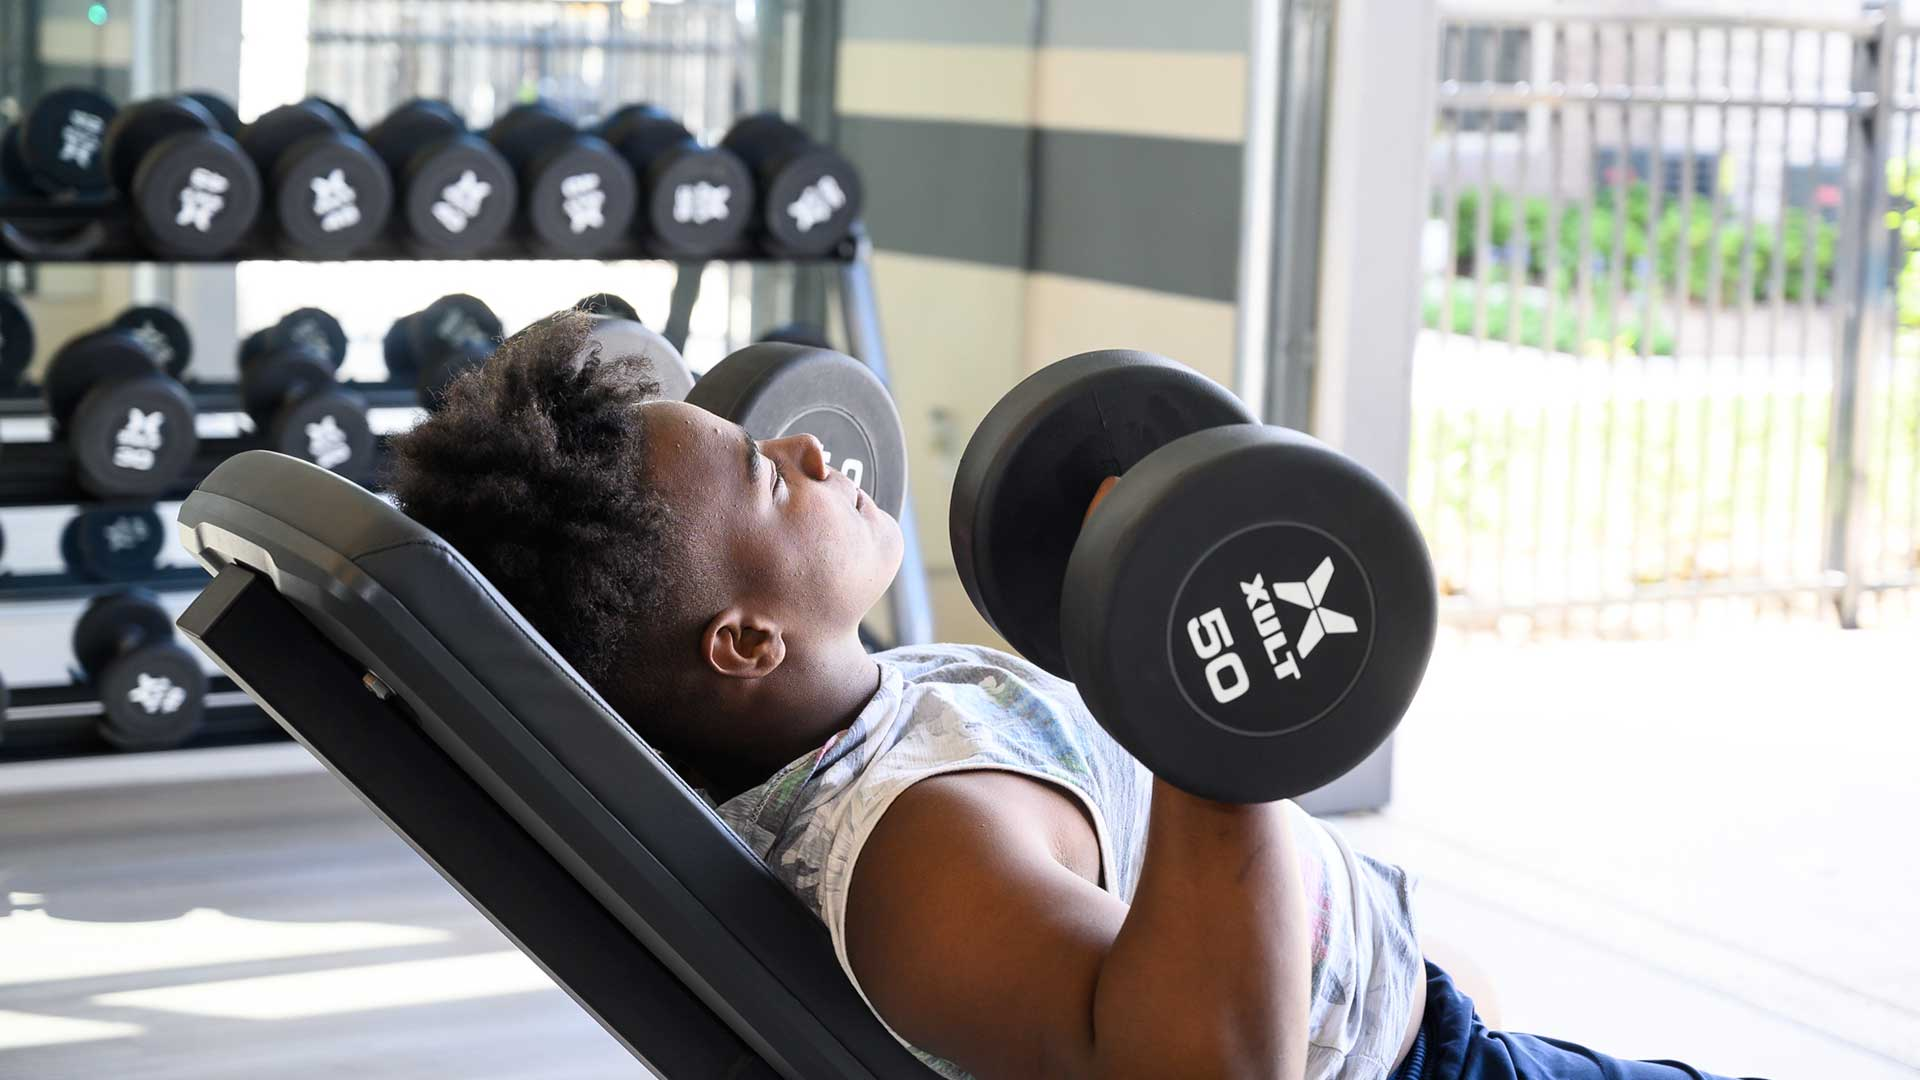 Lifting free weights in fitness center